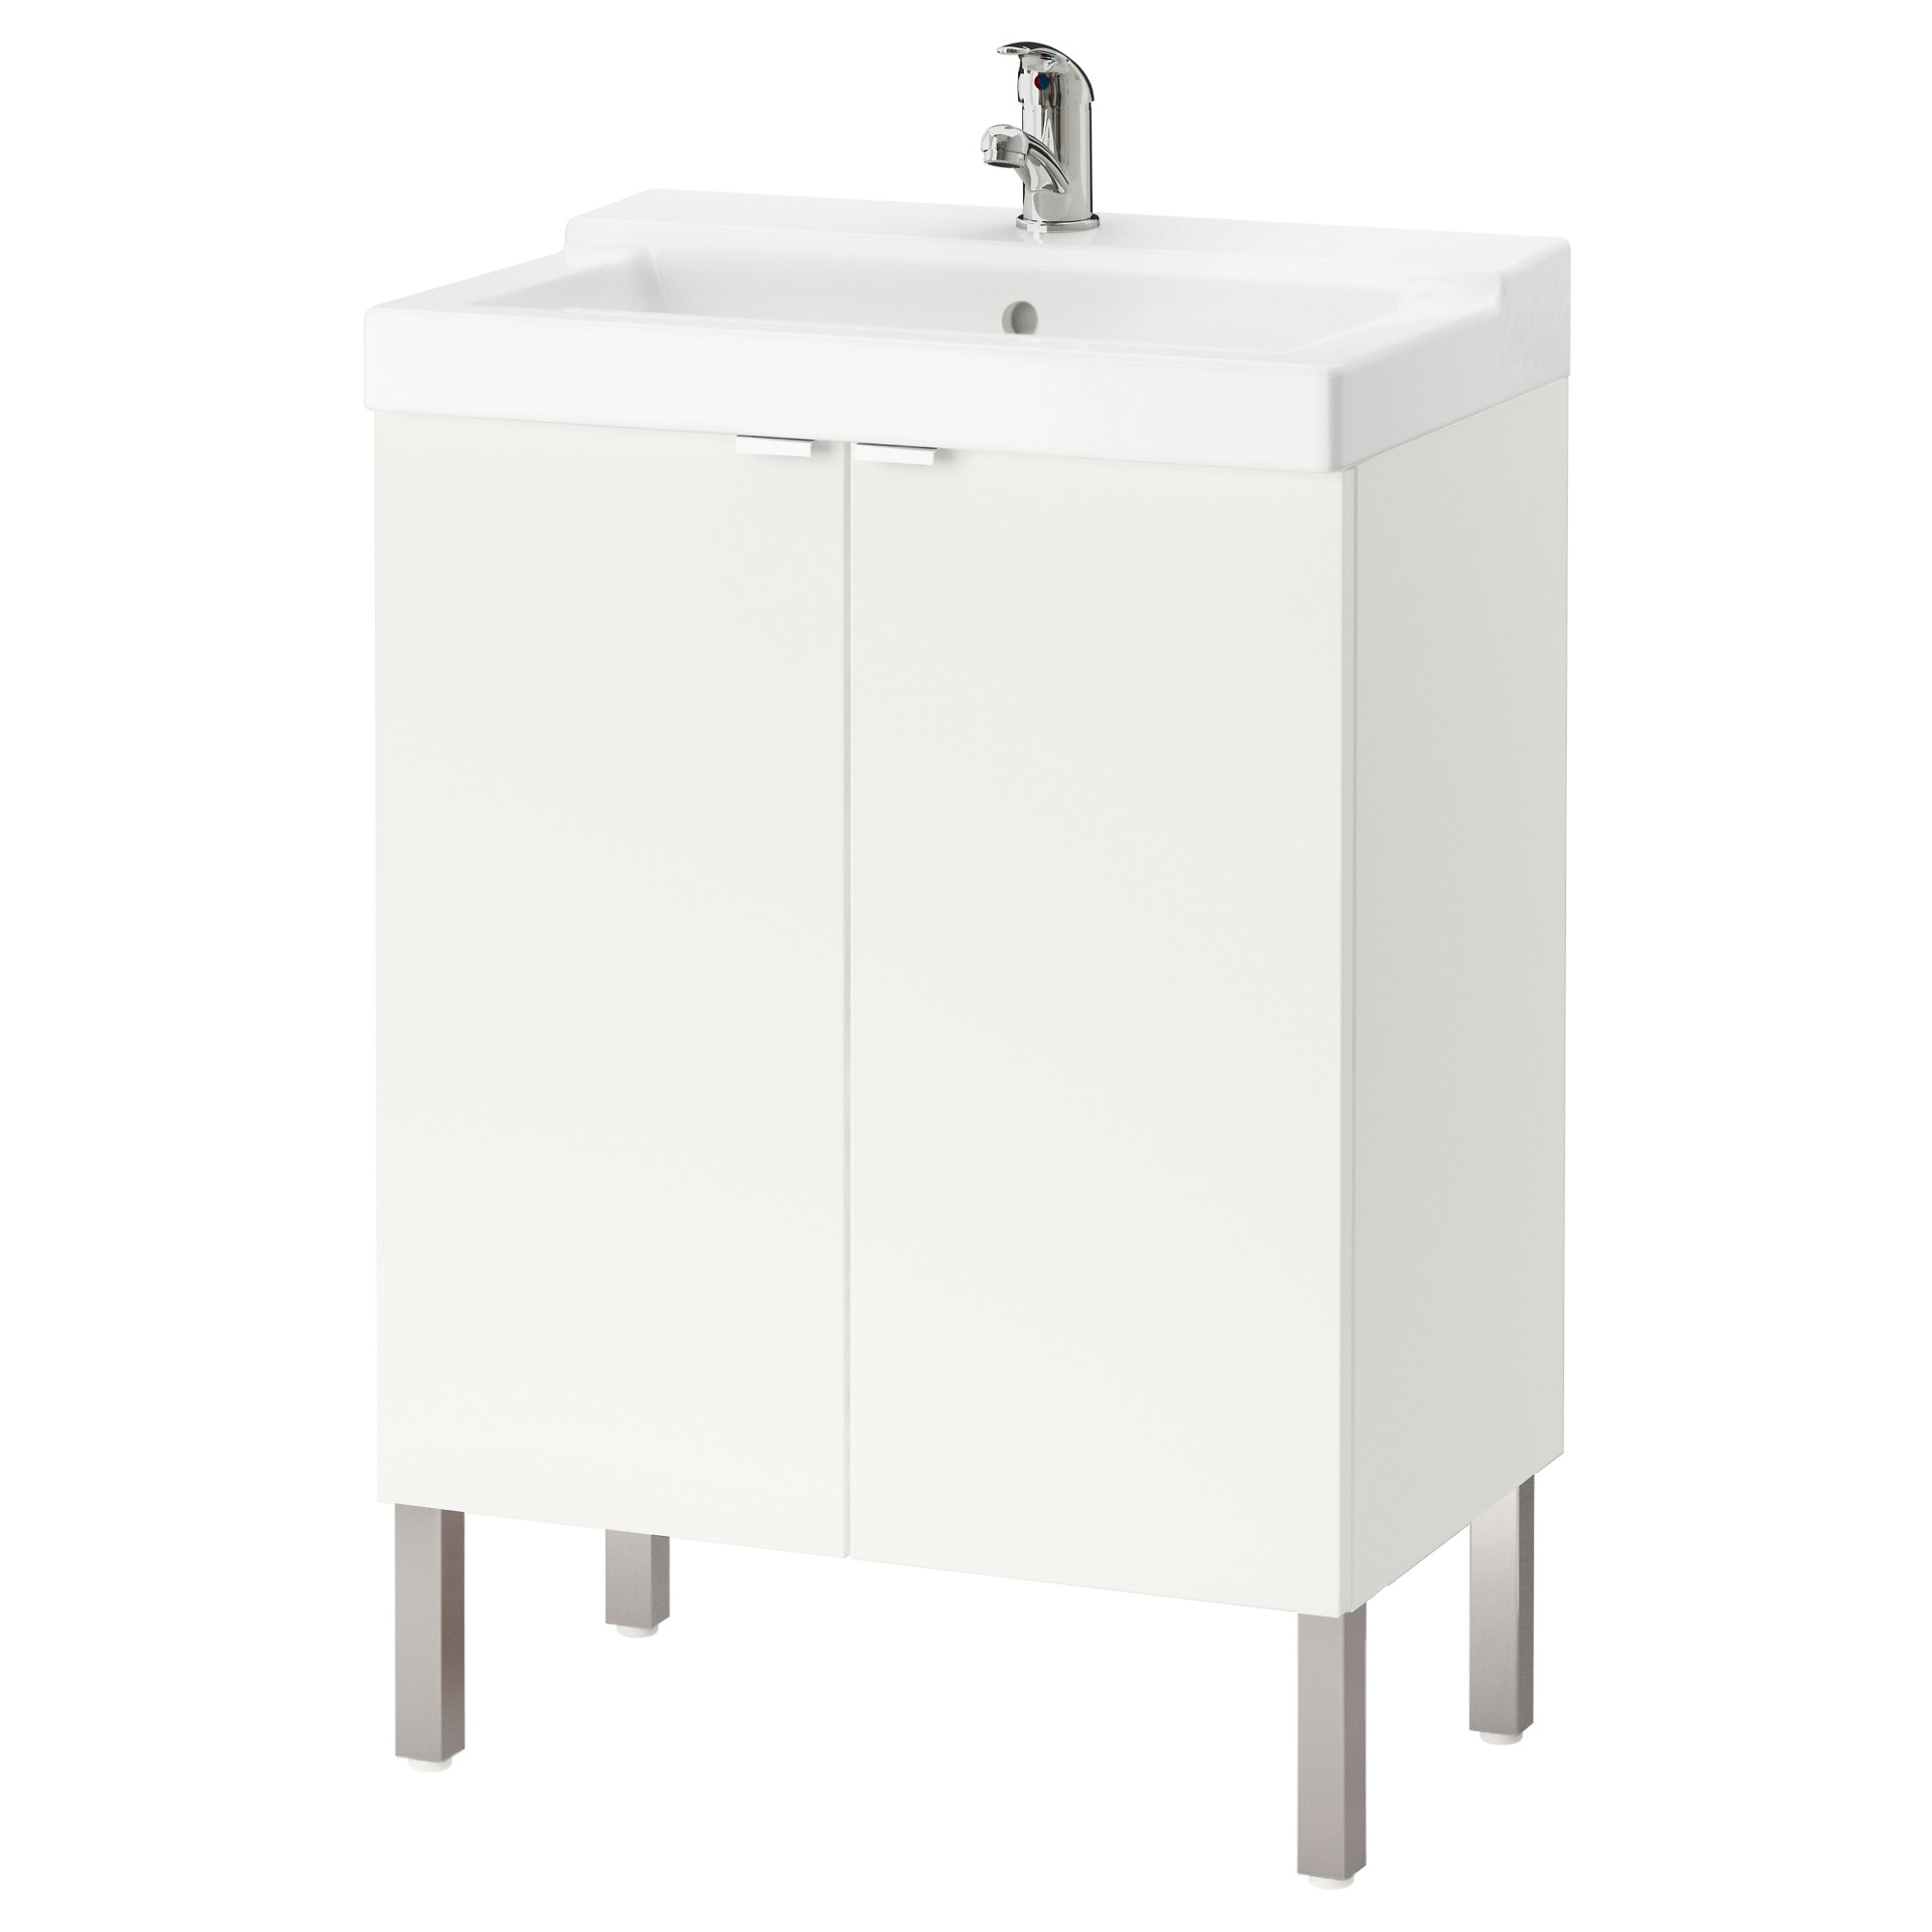 LILL NGEN   T LLEVIKEN sink cabinet with 2 doors  white Width  23 5 8. Sink Cabinets   Bathroom   IKEA